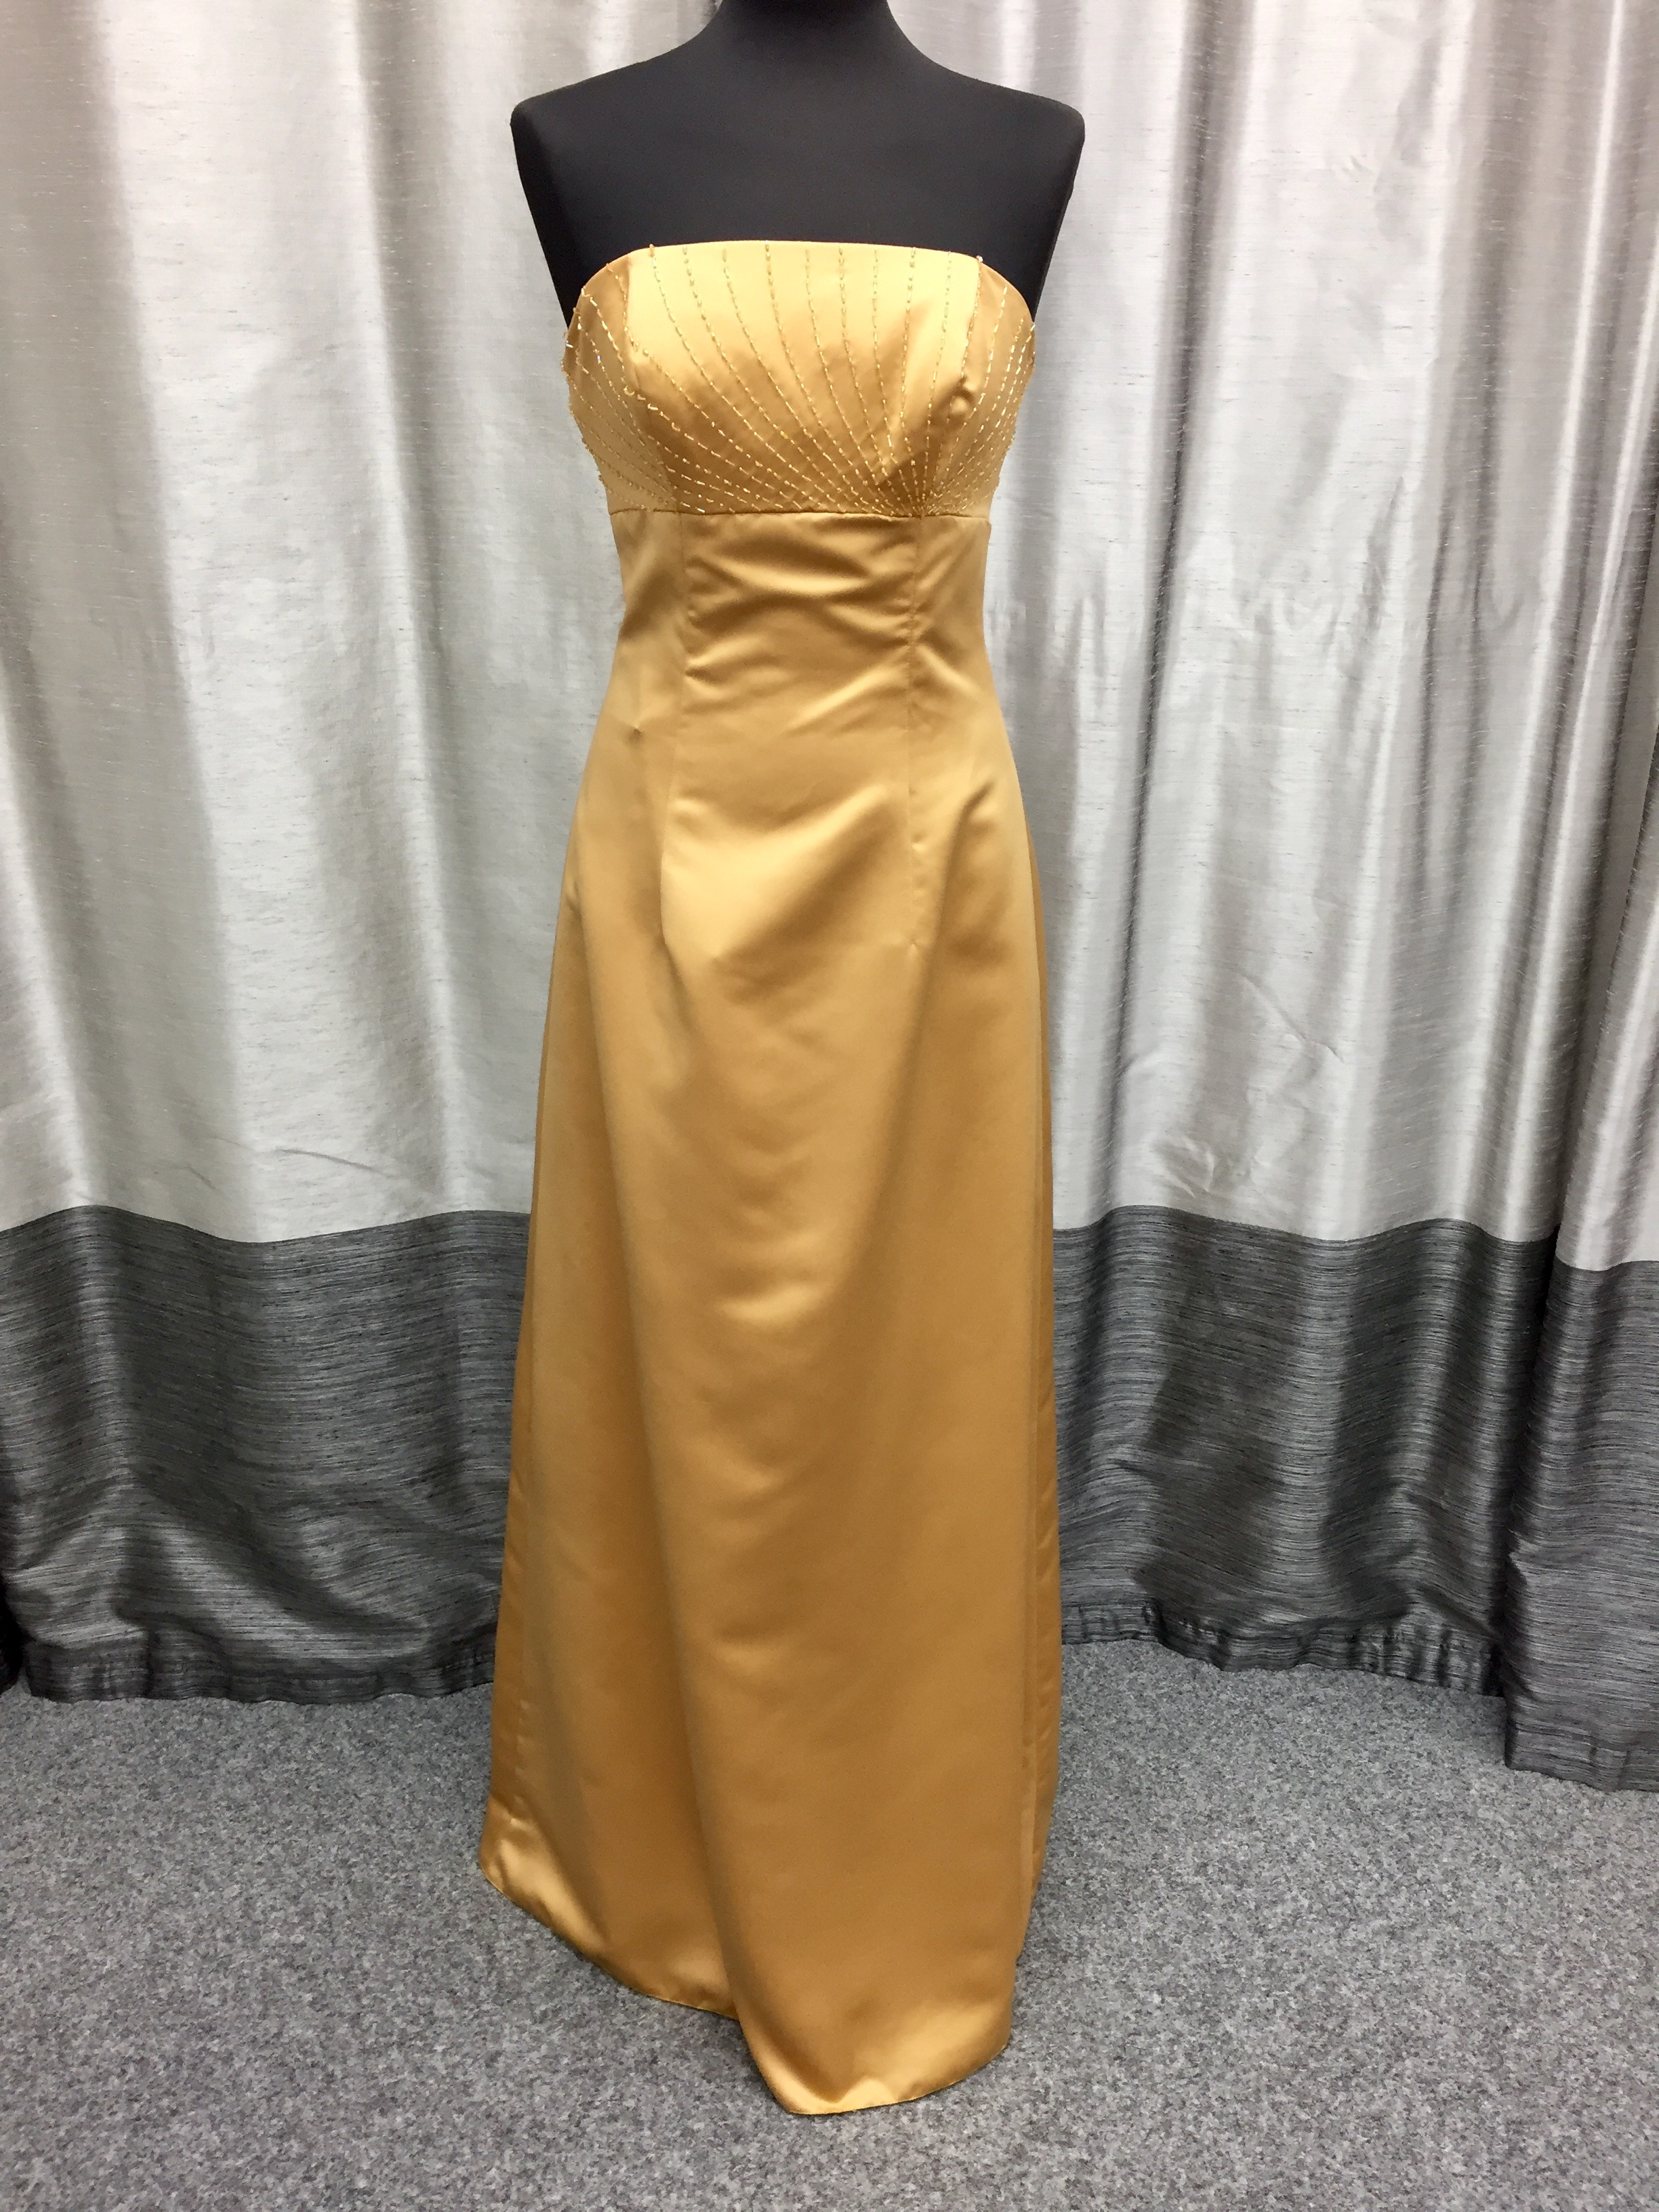 Brassy, gold satin prom or bridesmaid dress size 10